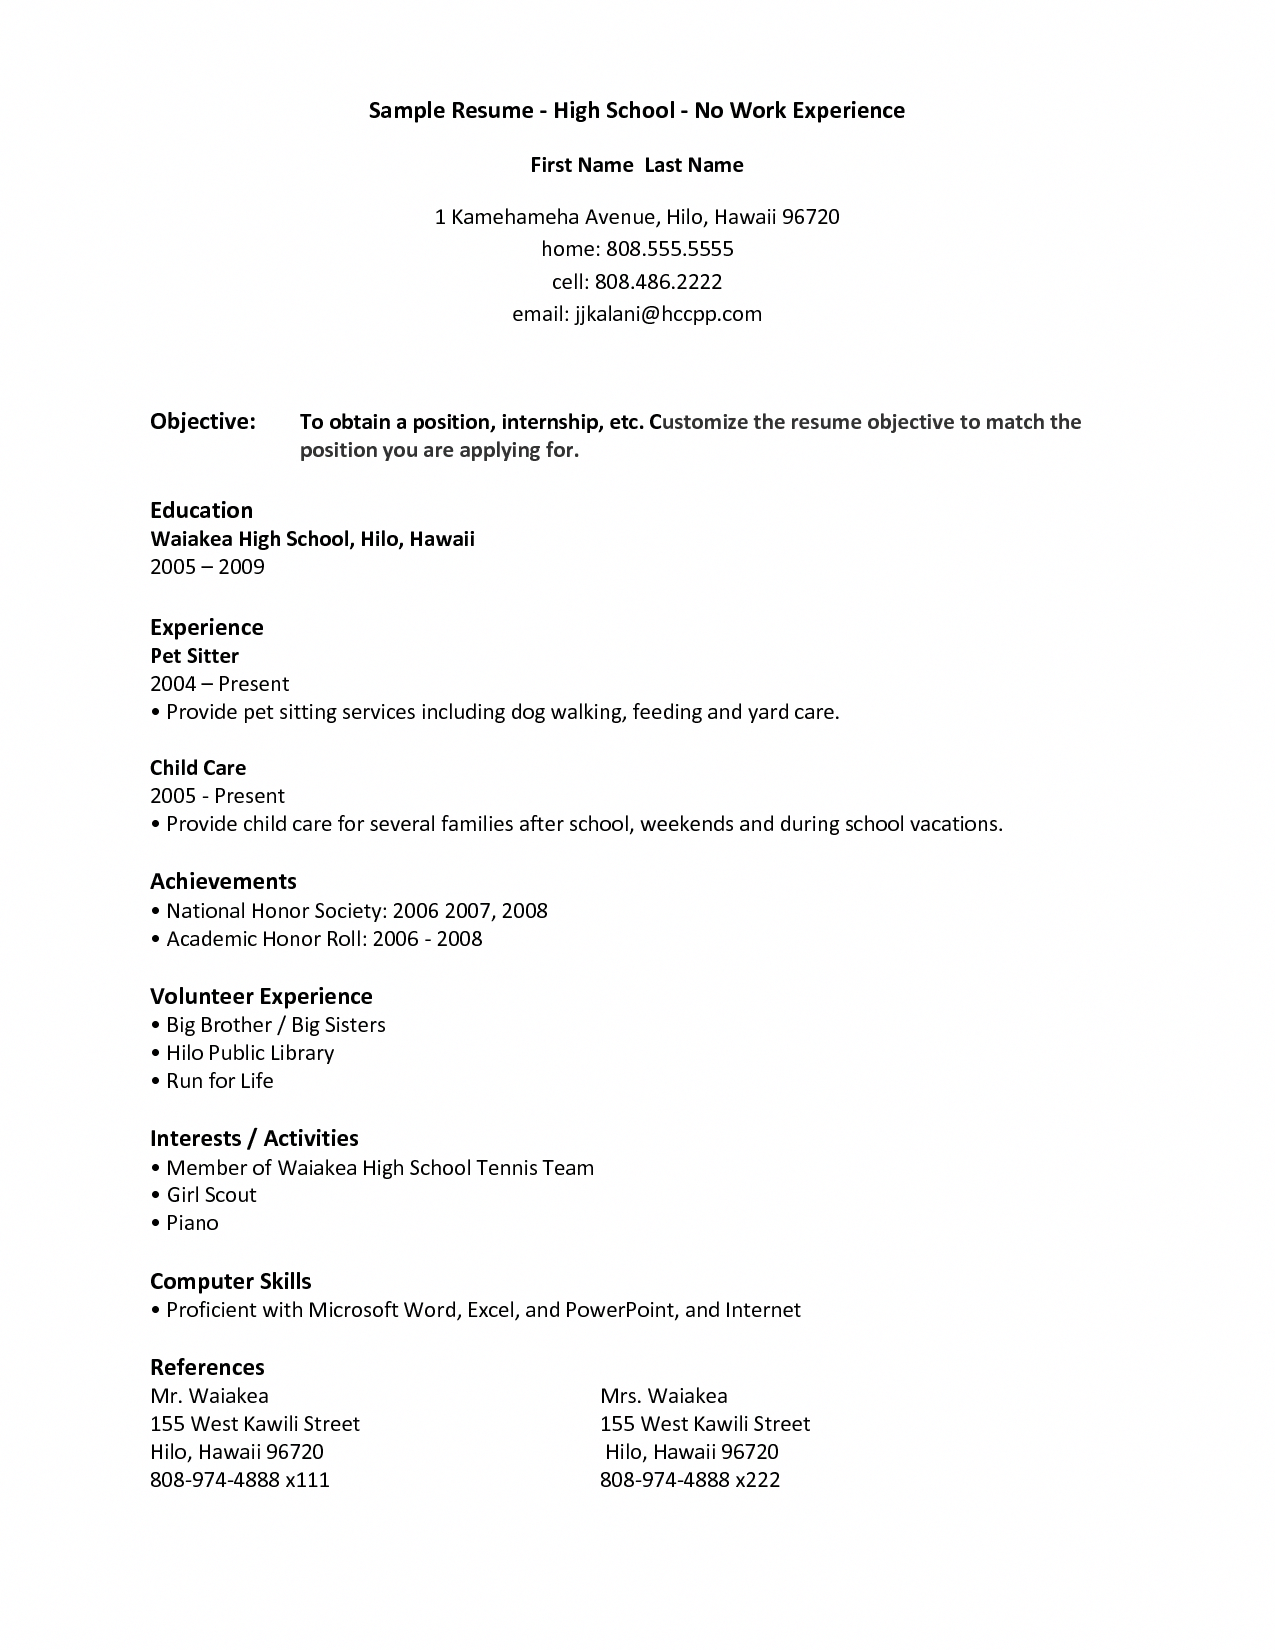 Resume Examples With No Work Experience , ResumeExamples